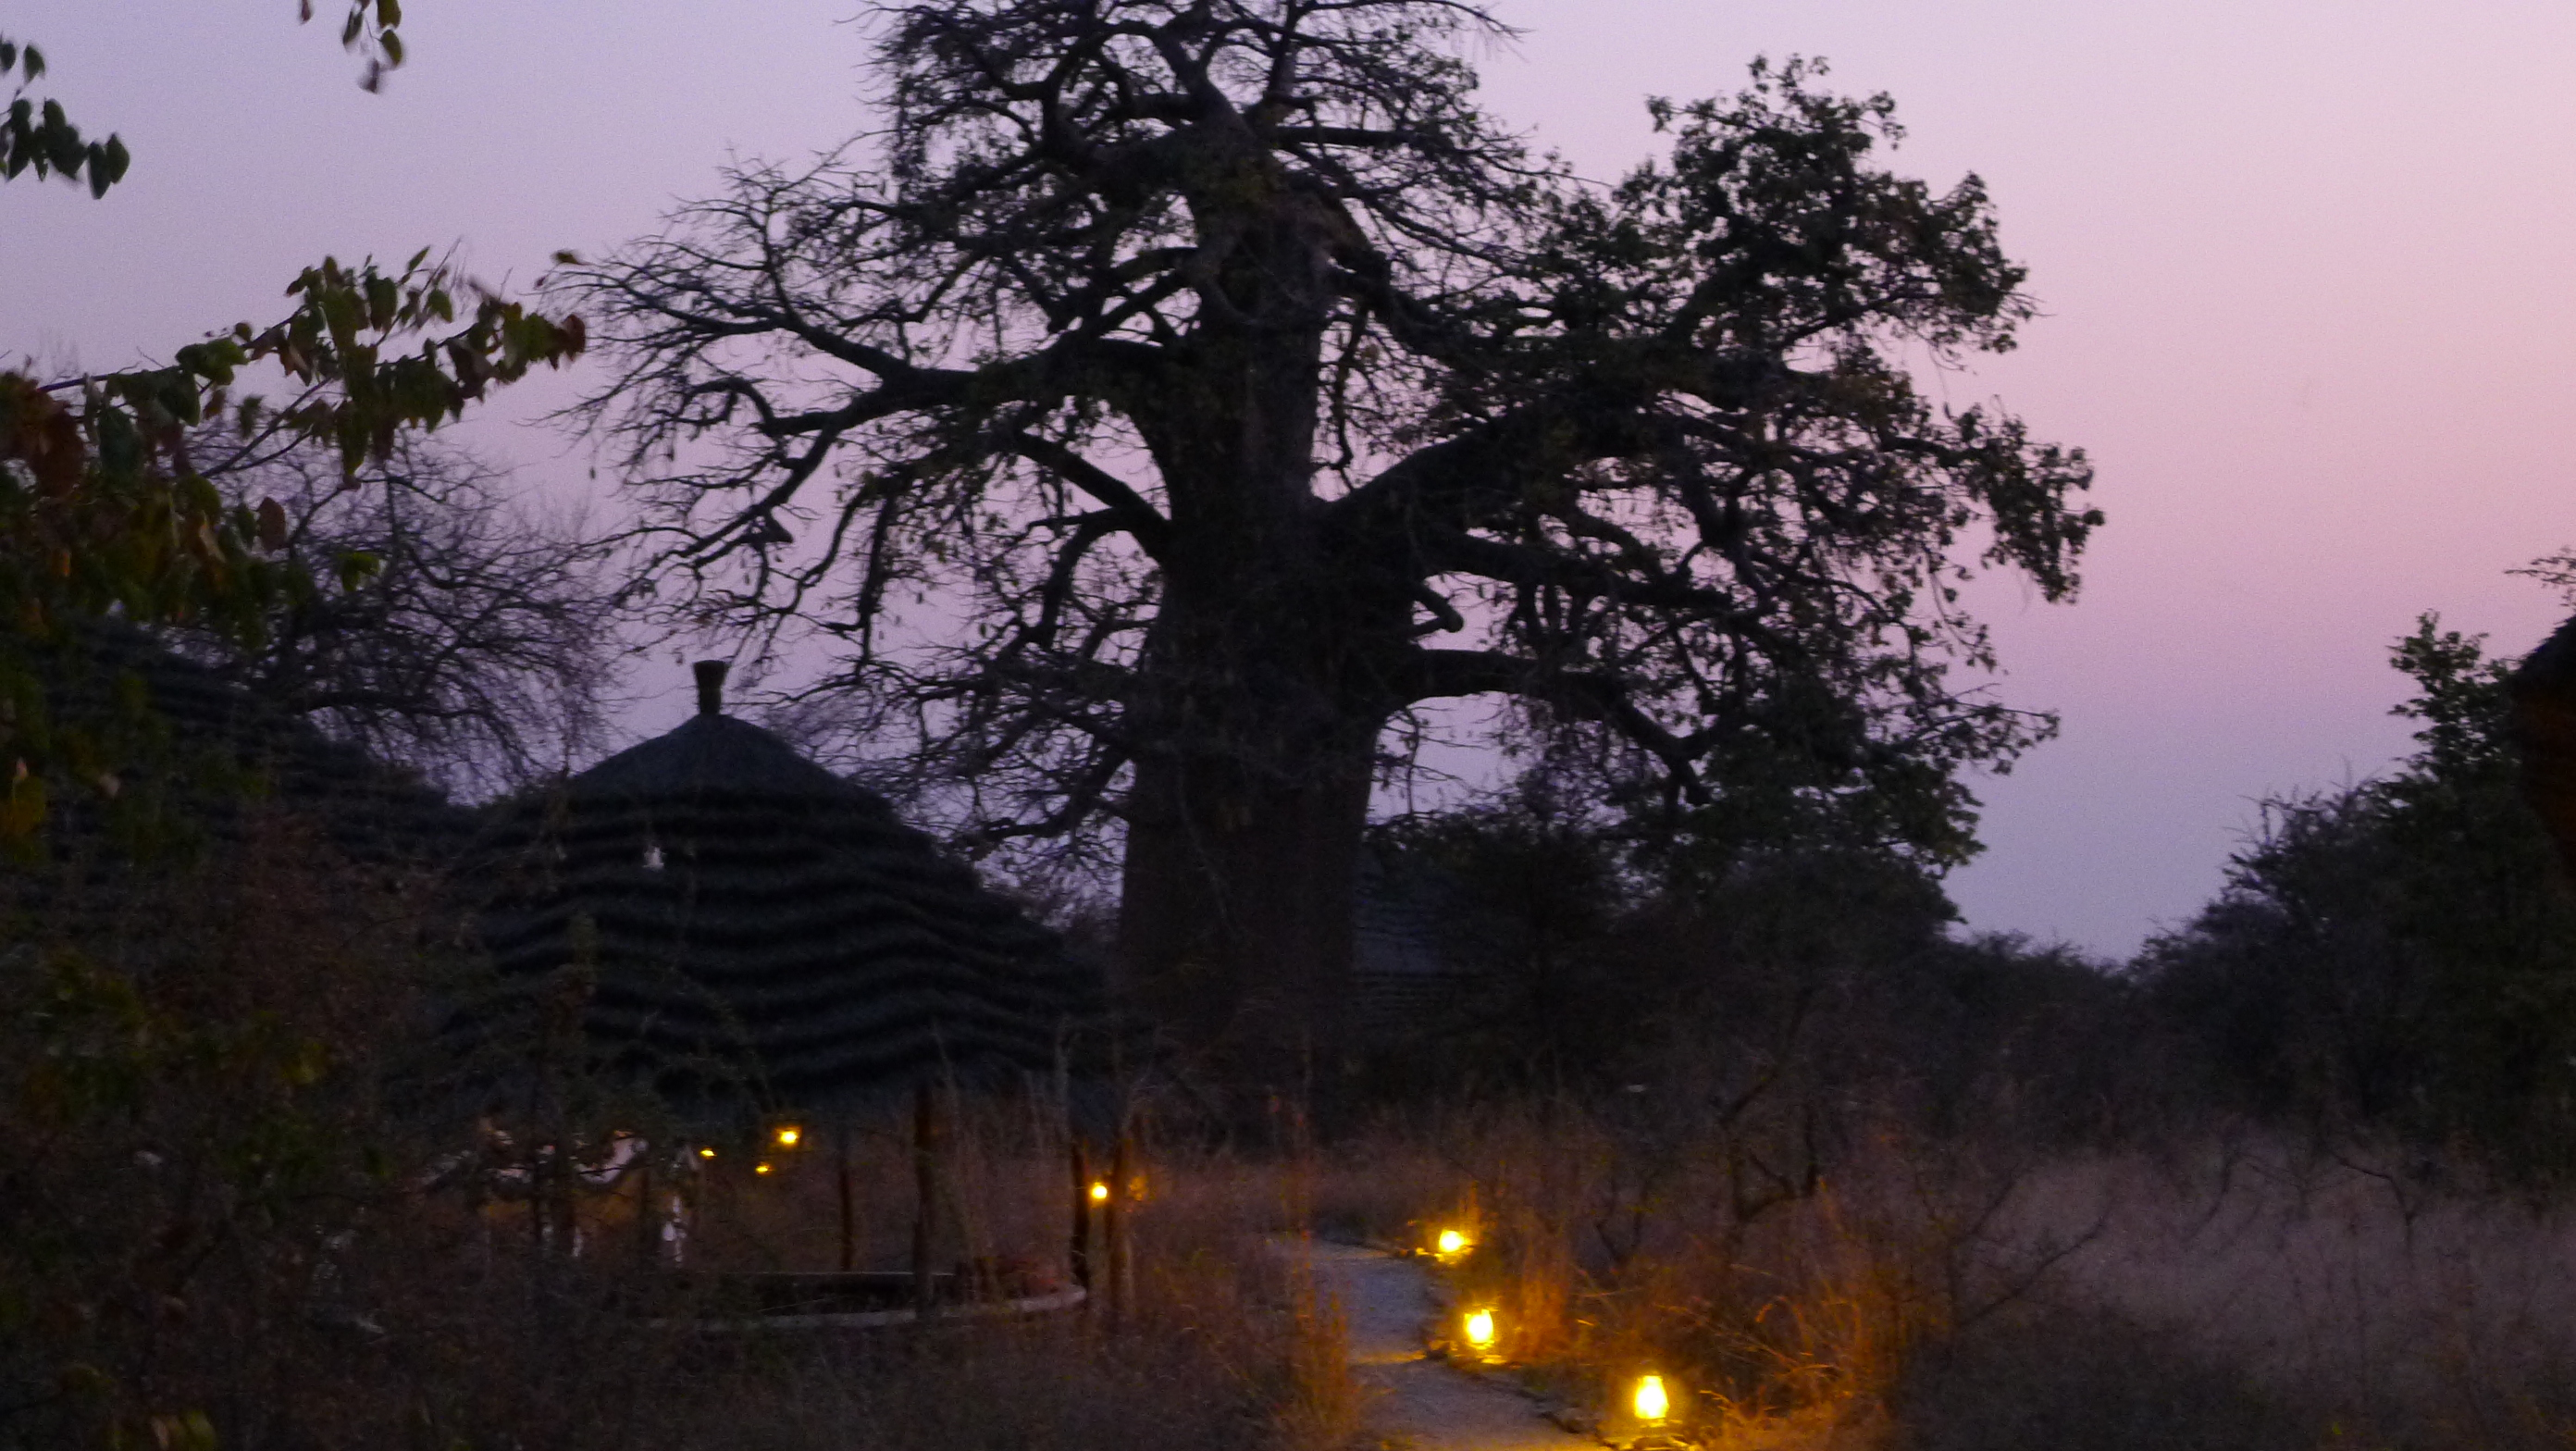 Some of the campsite we stayed at in Botswana were beautiful. There were often chalets to rent, but we always camped. It is at this campsite we were visited by a leopard in the night